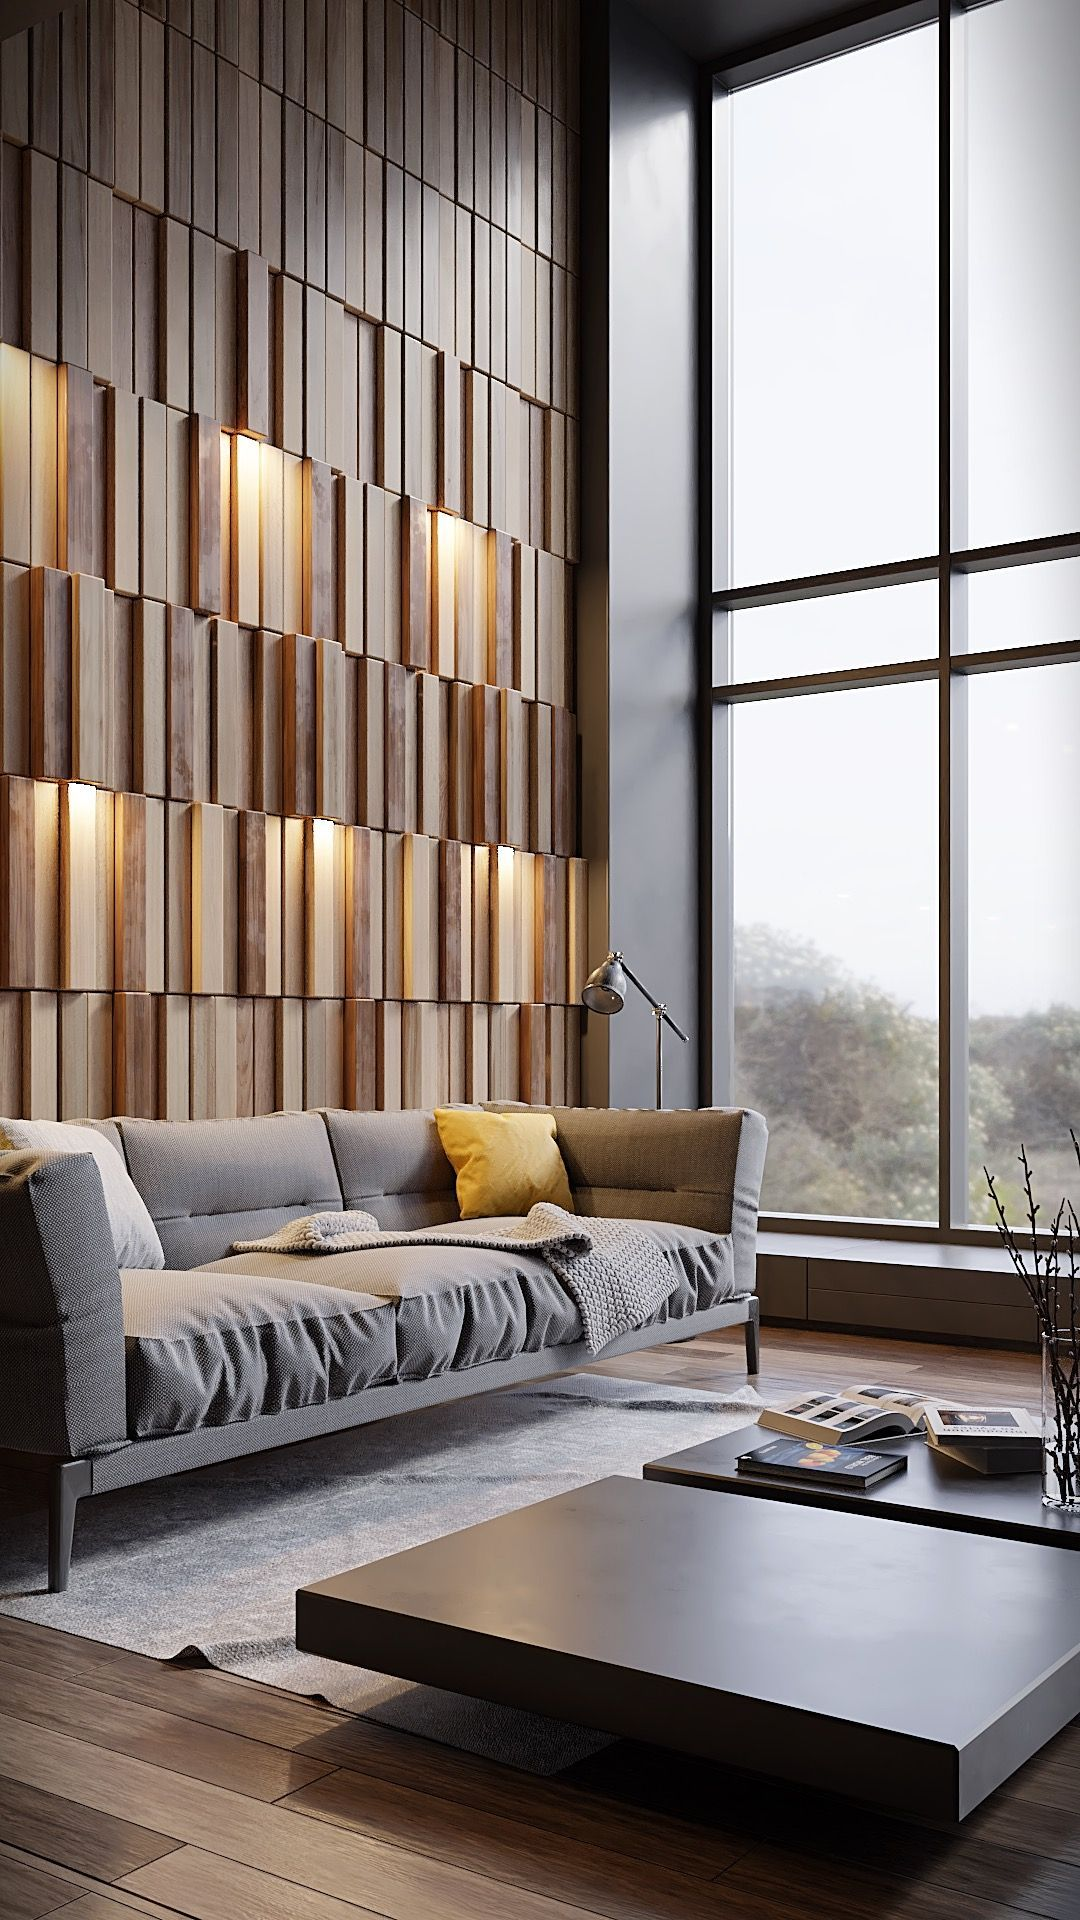 Conceptual Design Of Living Room Wall With 440 Wooden Slats